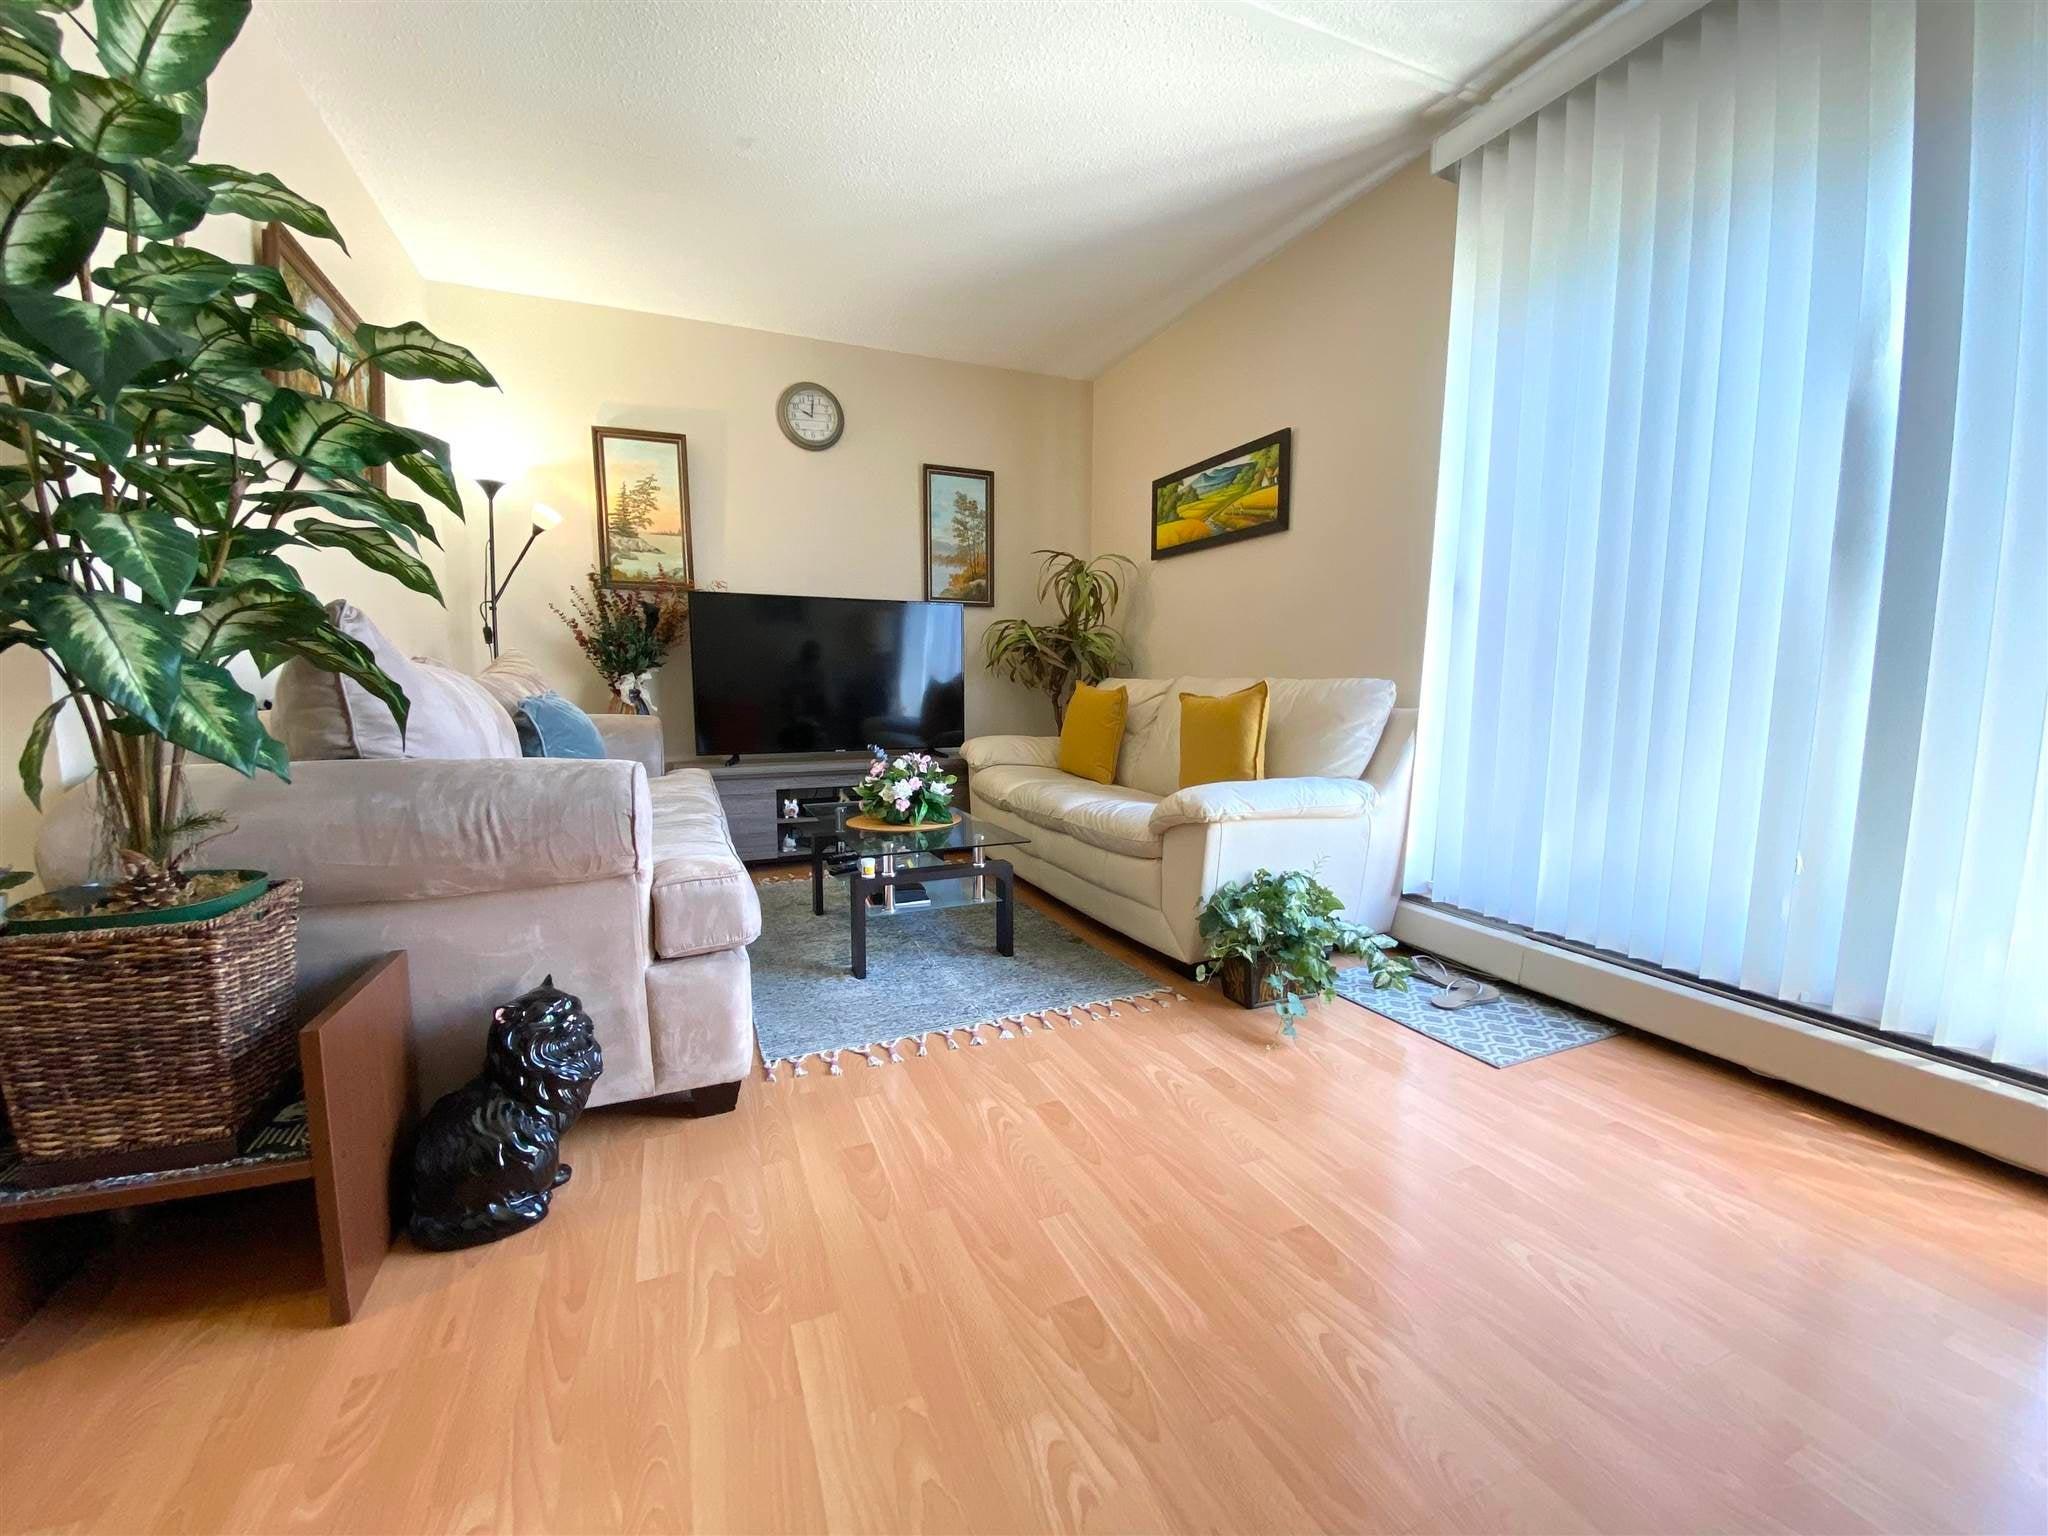 117 8031 RYAN ROAD - South Arm Apartment/Condo for sale, 2 Bedrooms (R2594920)